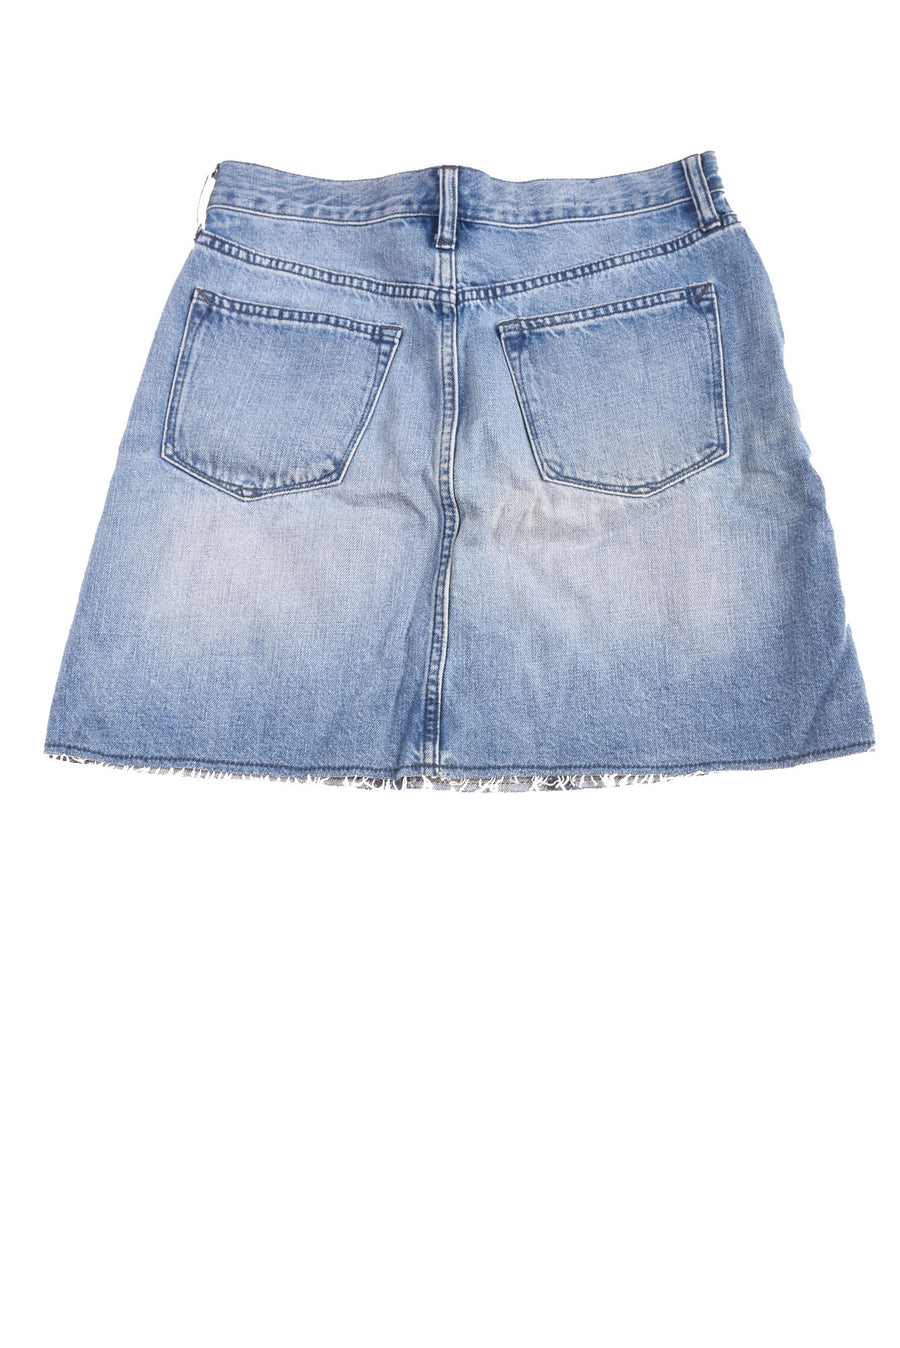 NEW Gap Women's Skirt 28 Blue